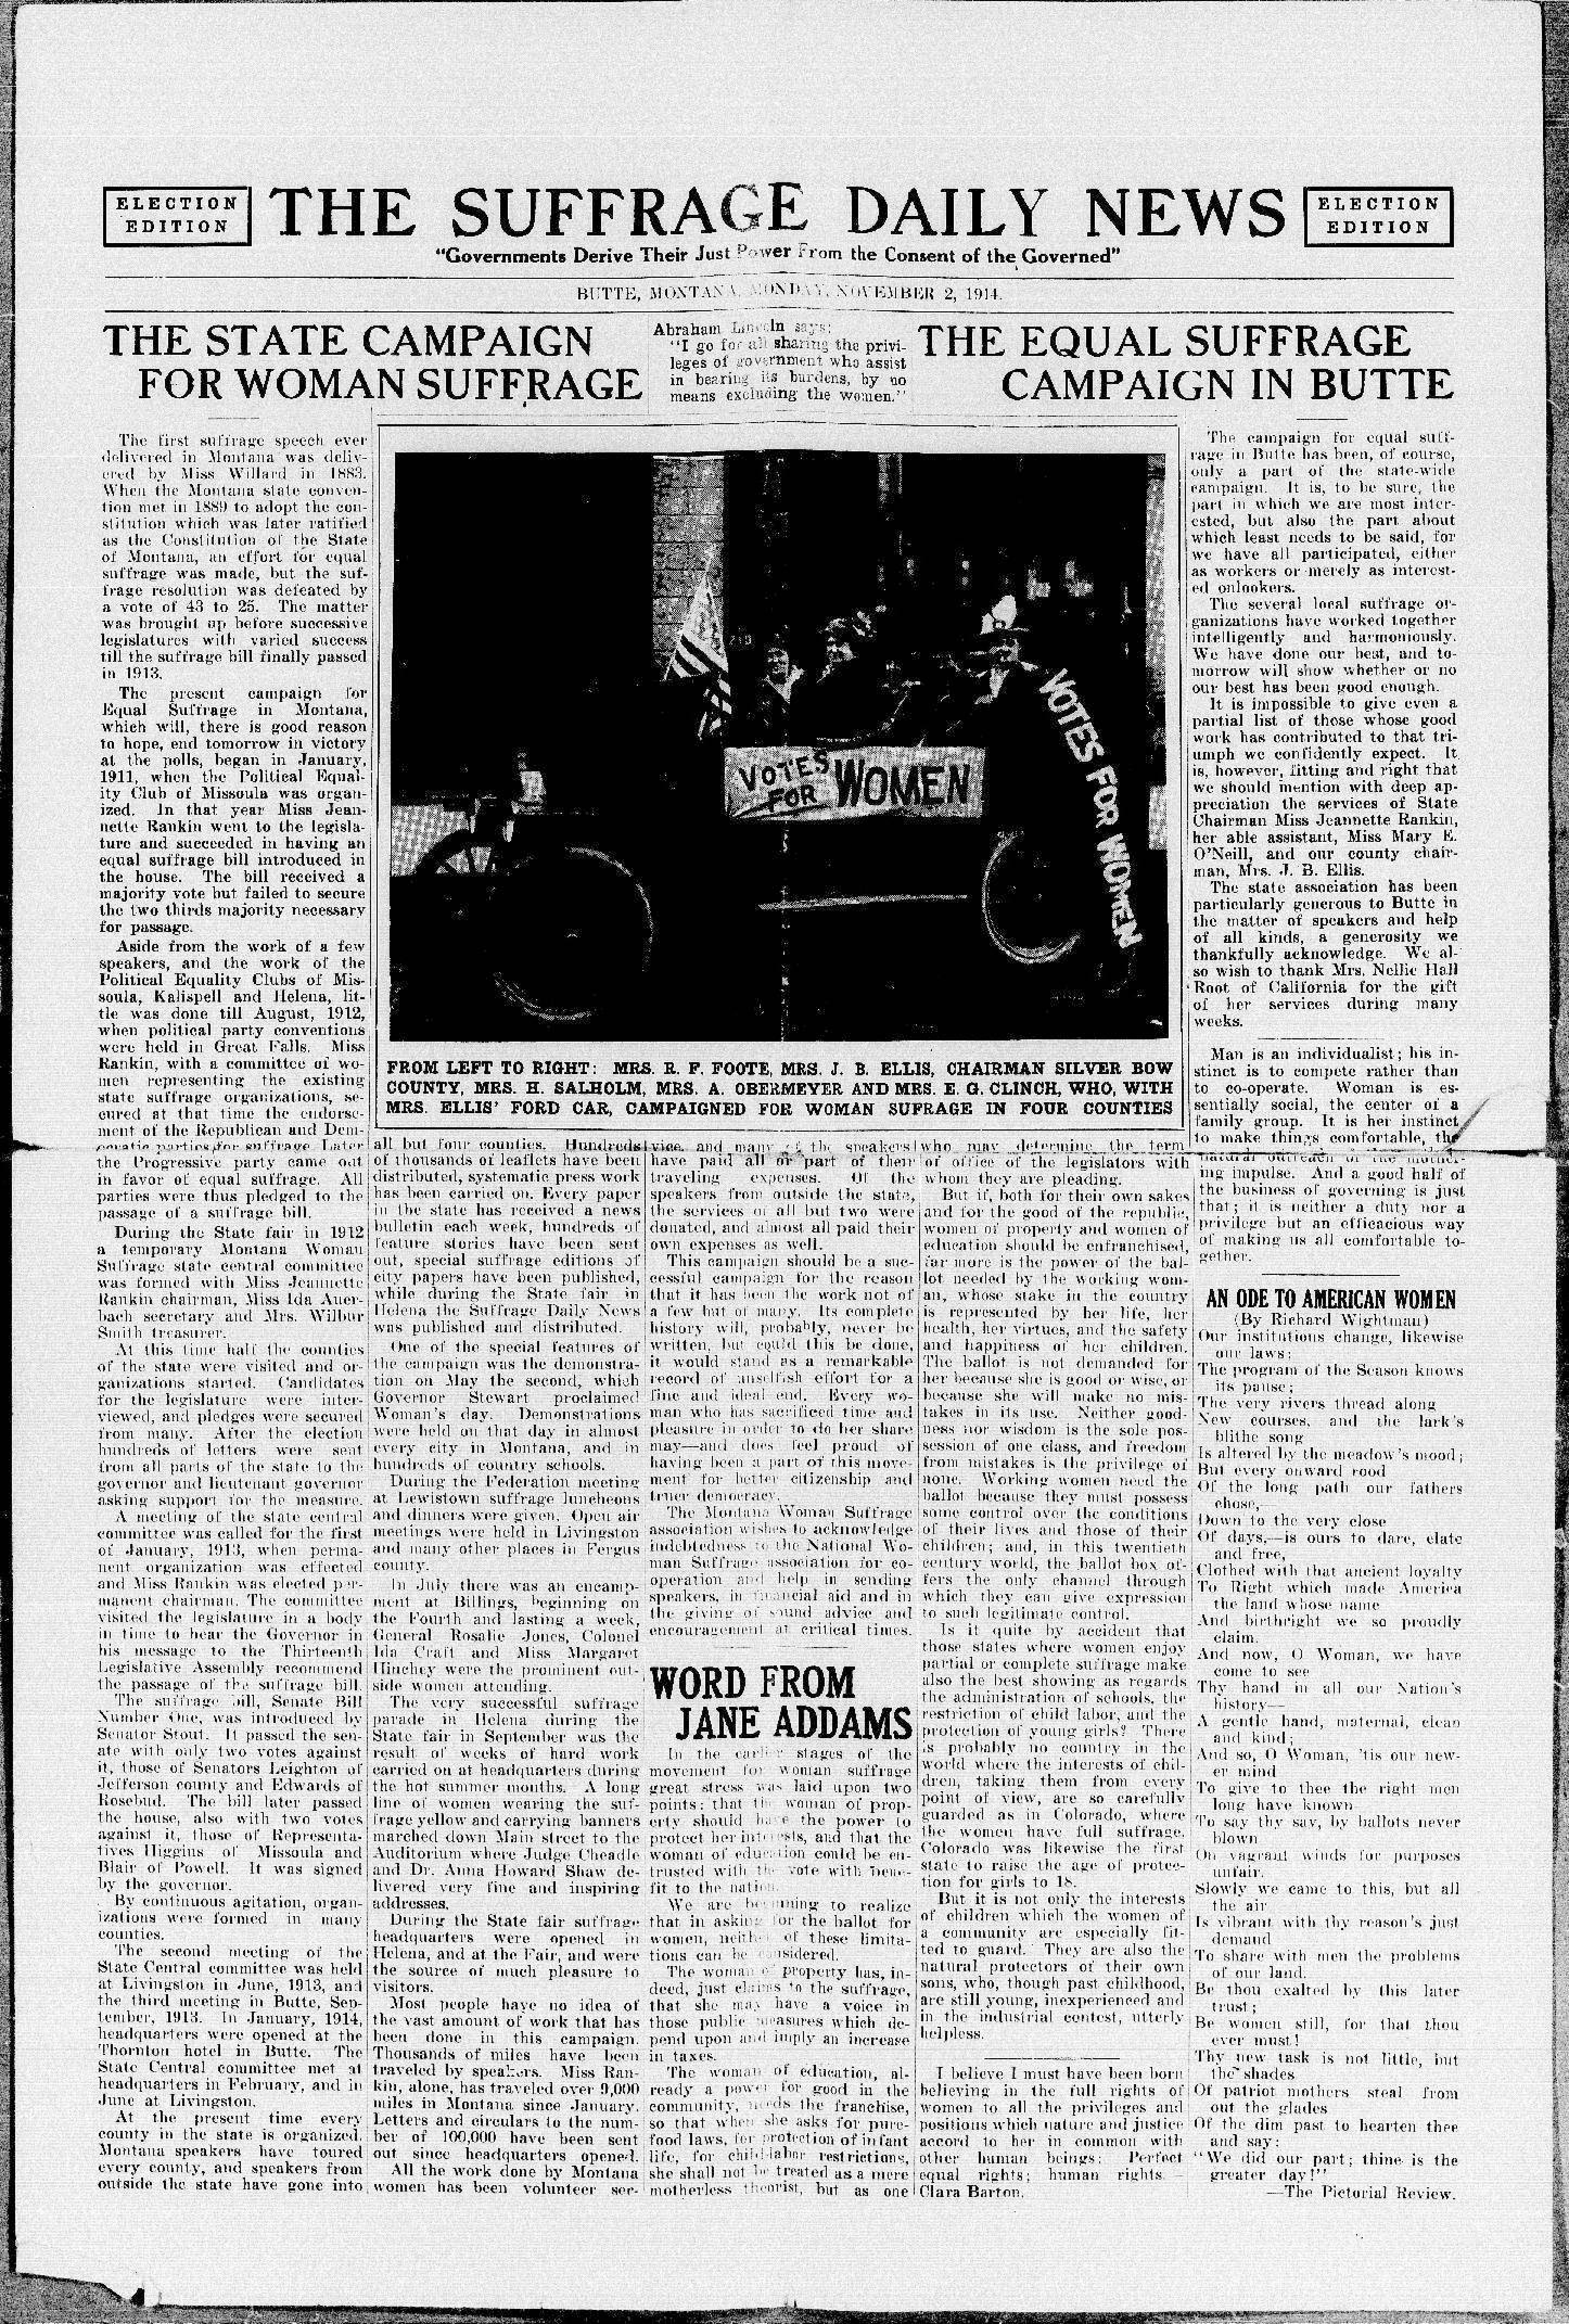 The Suffrage Daily News. (Helena, Mont.), Nov. 2, 1914.Front page news: The fight for women's suffrage in the state of Montana. Montana went on to elect the first woman to Congress.